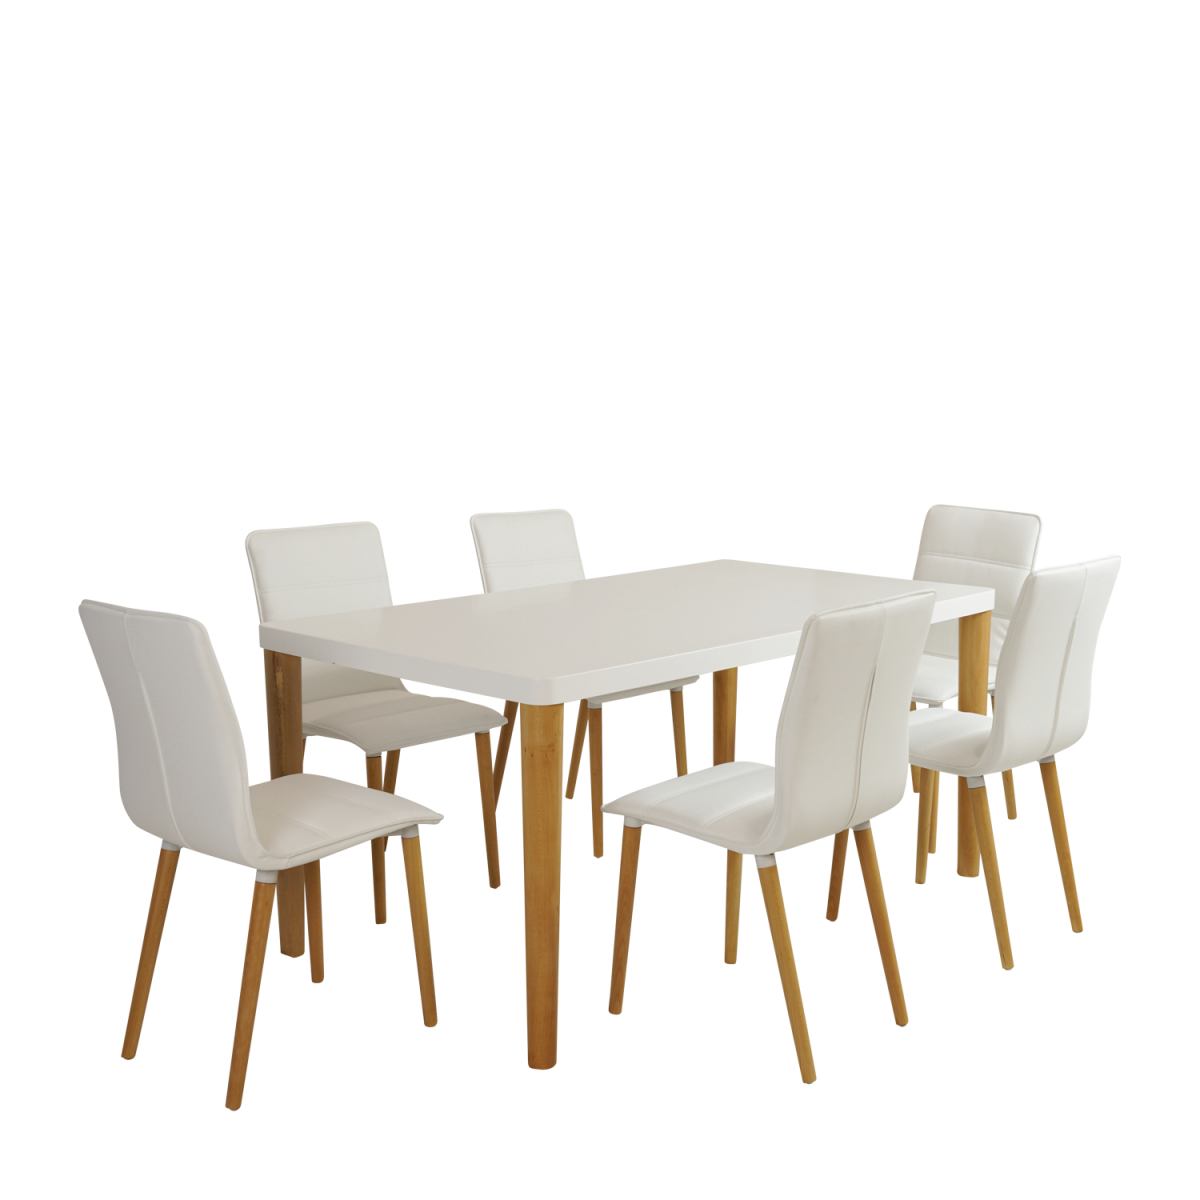 Table And Chairs For Dining white high gloss extending  : 19181919 3 from tweetrush.com size 1200 x 1200 png 529kB